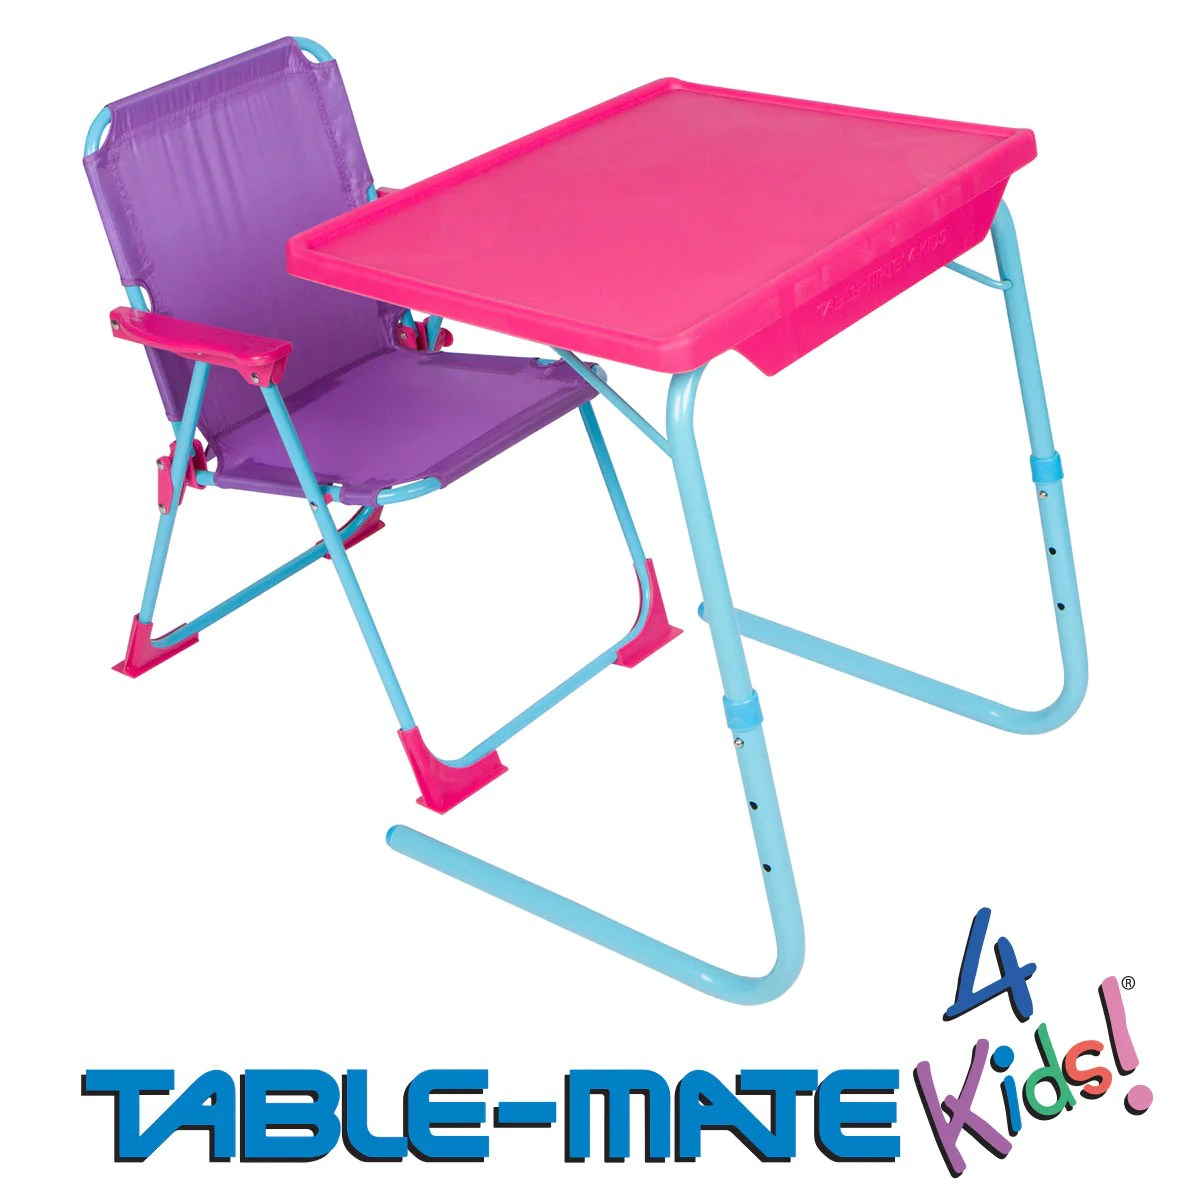 Childrens Folding Table And Chairs Table Mate 4 Kids